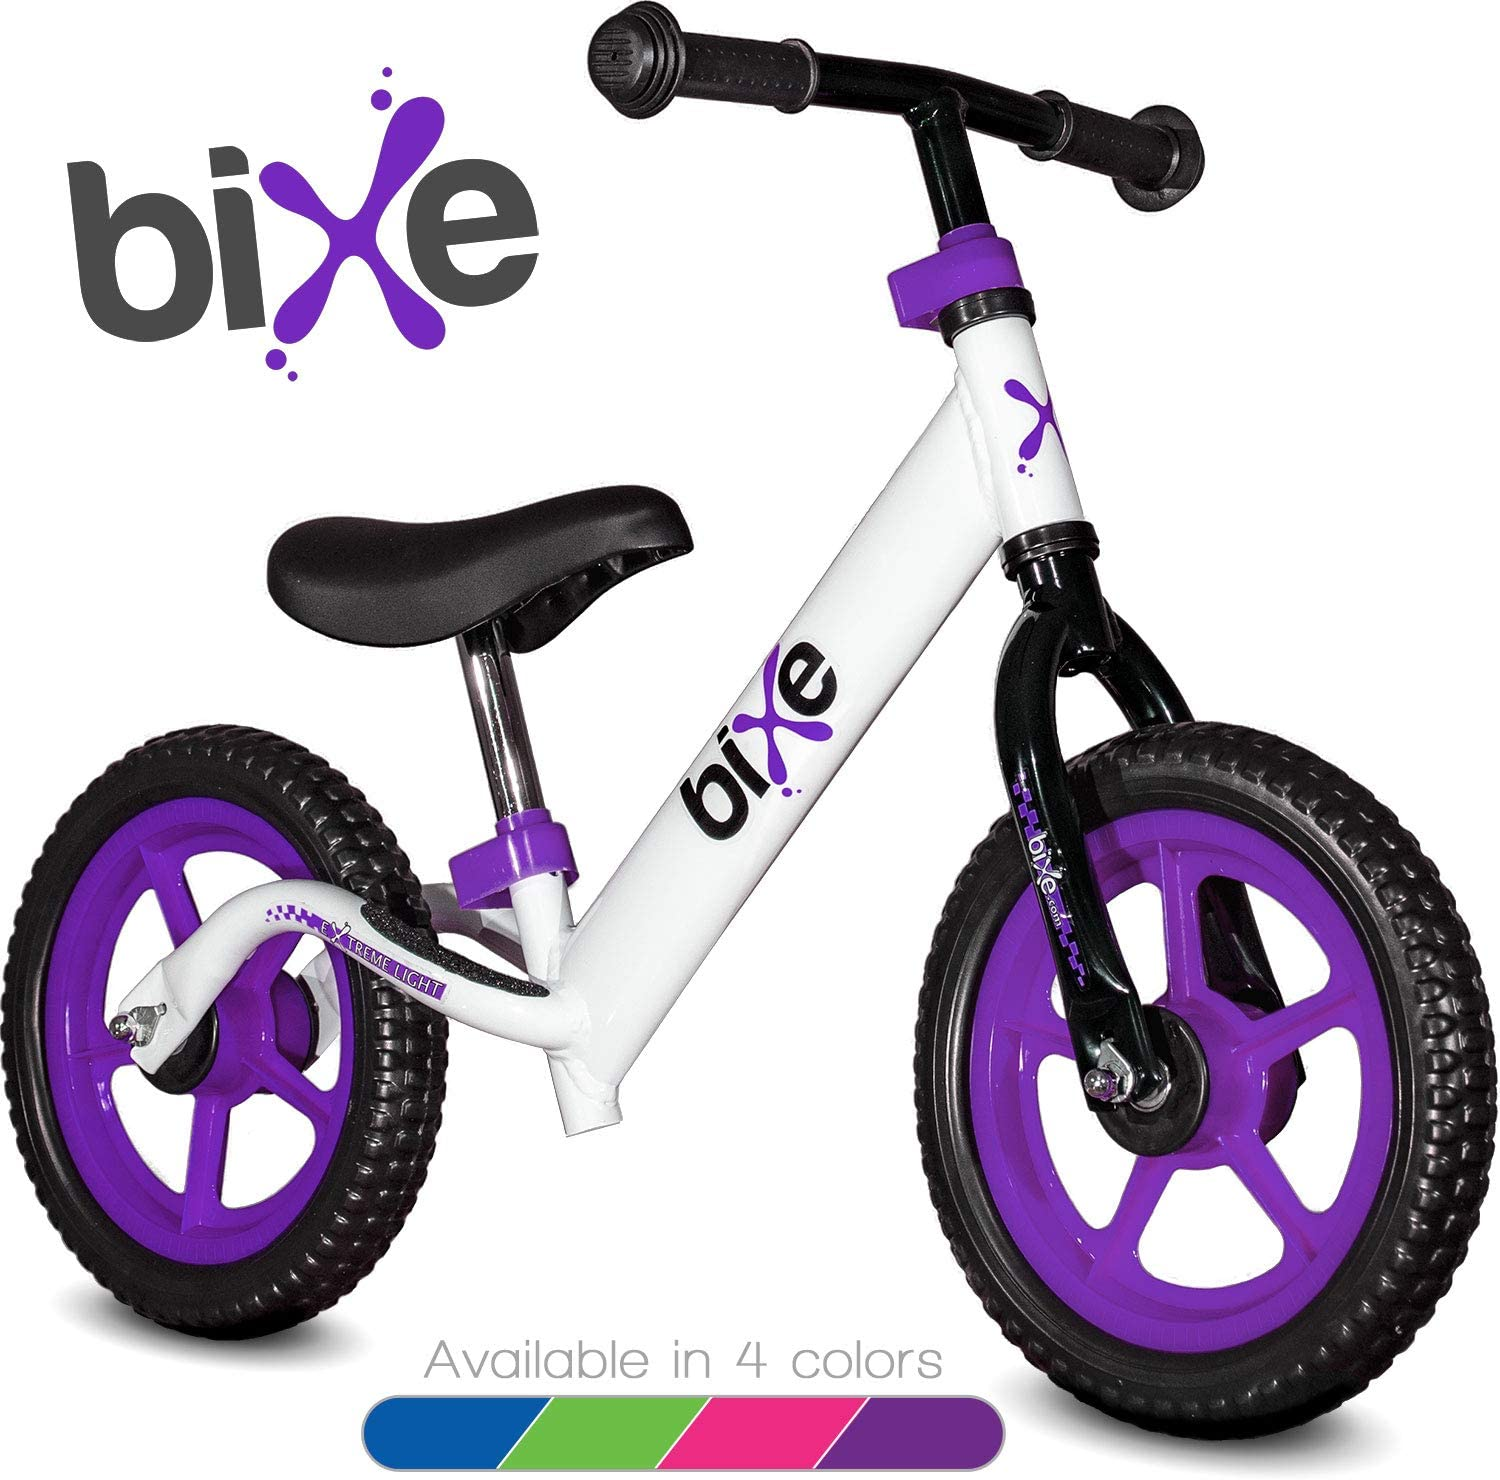 Top 10 Best Balance Bikes For Toddlers 2020 Reviews 2